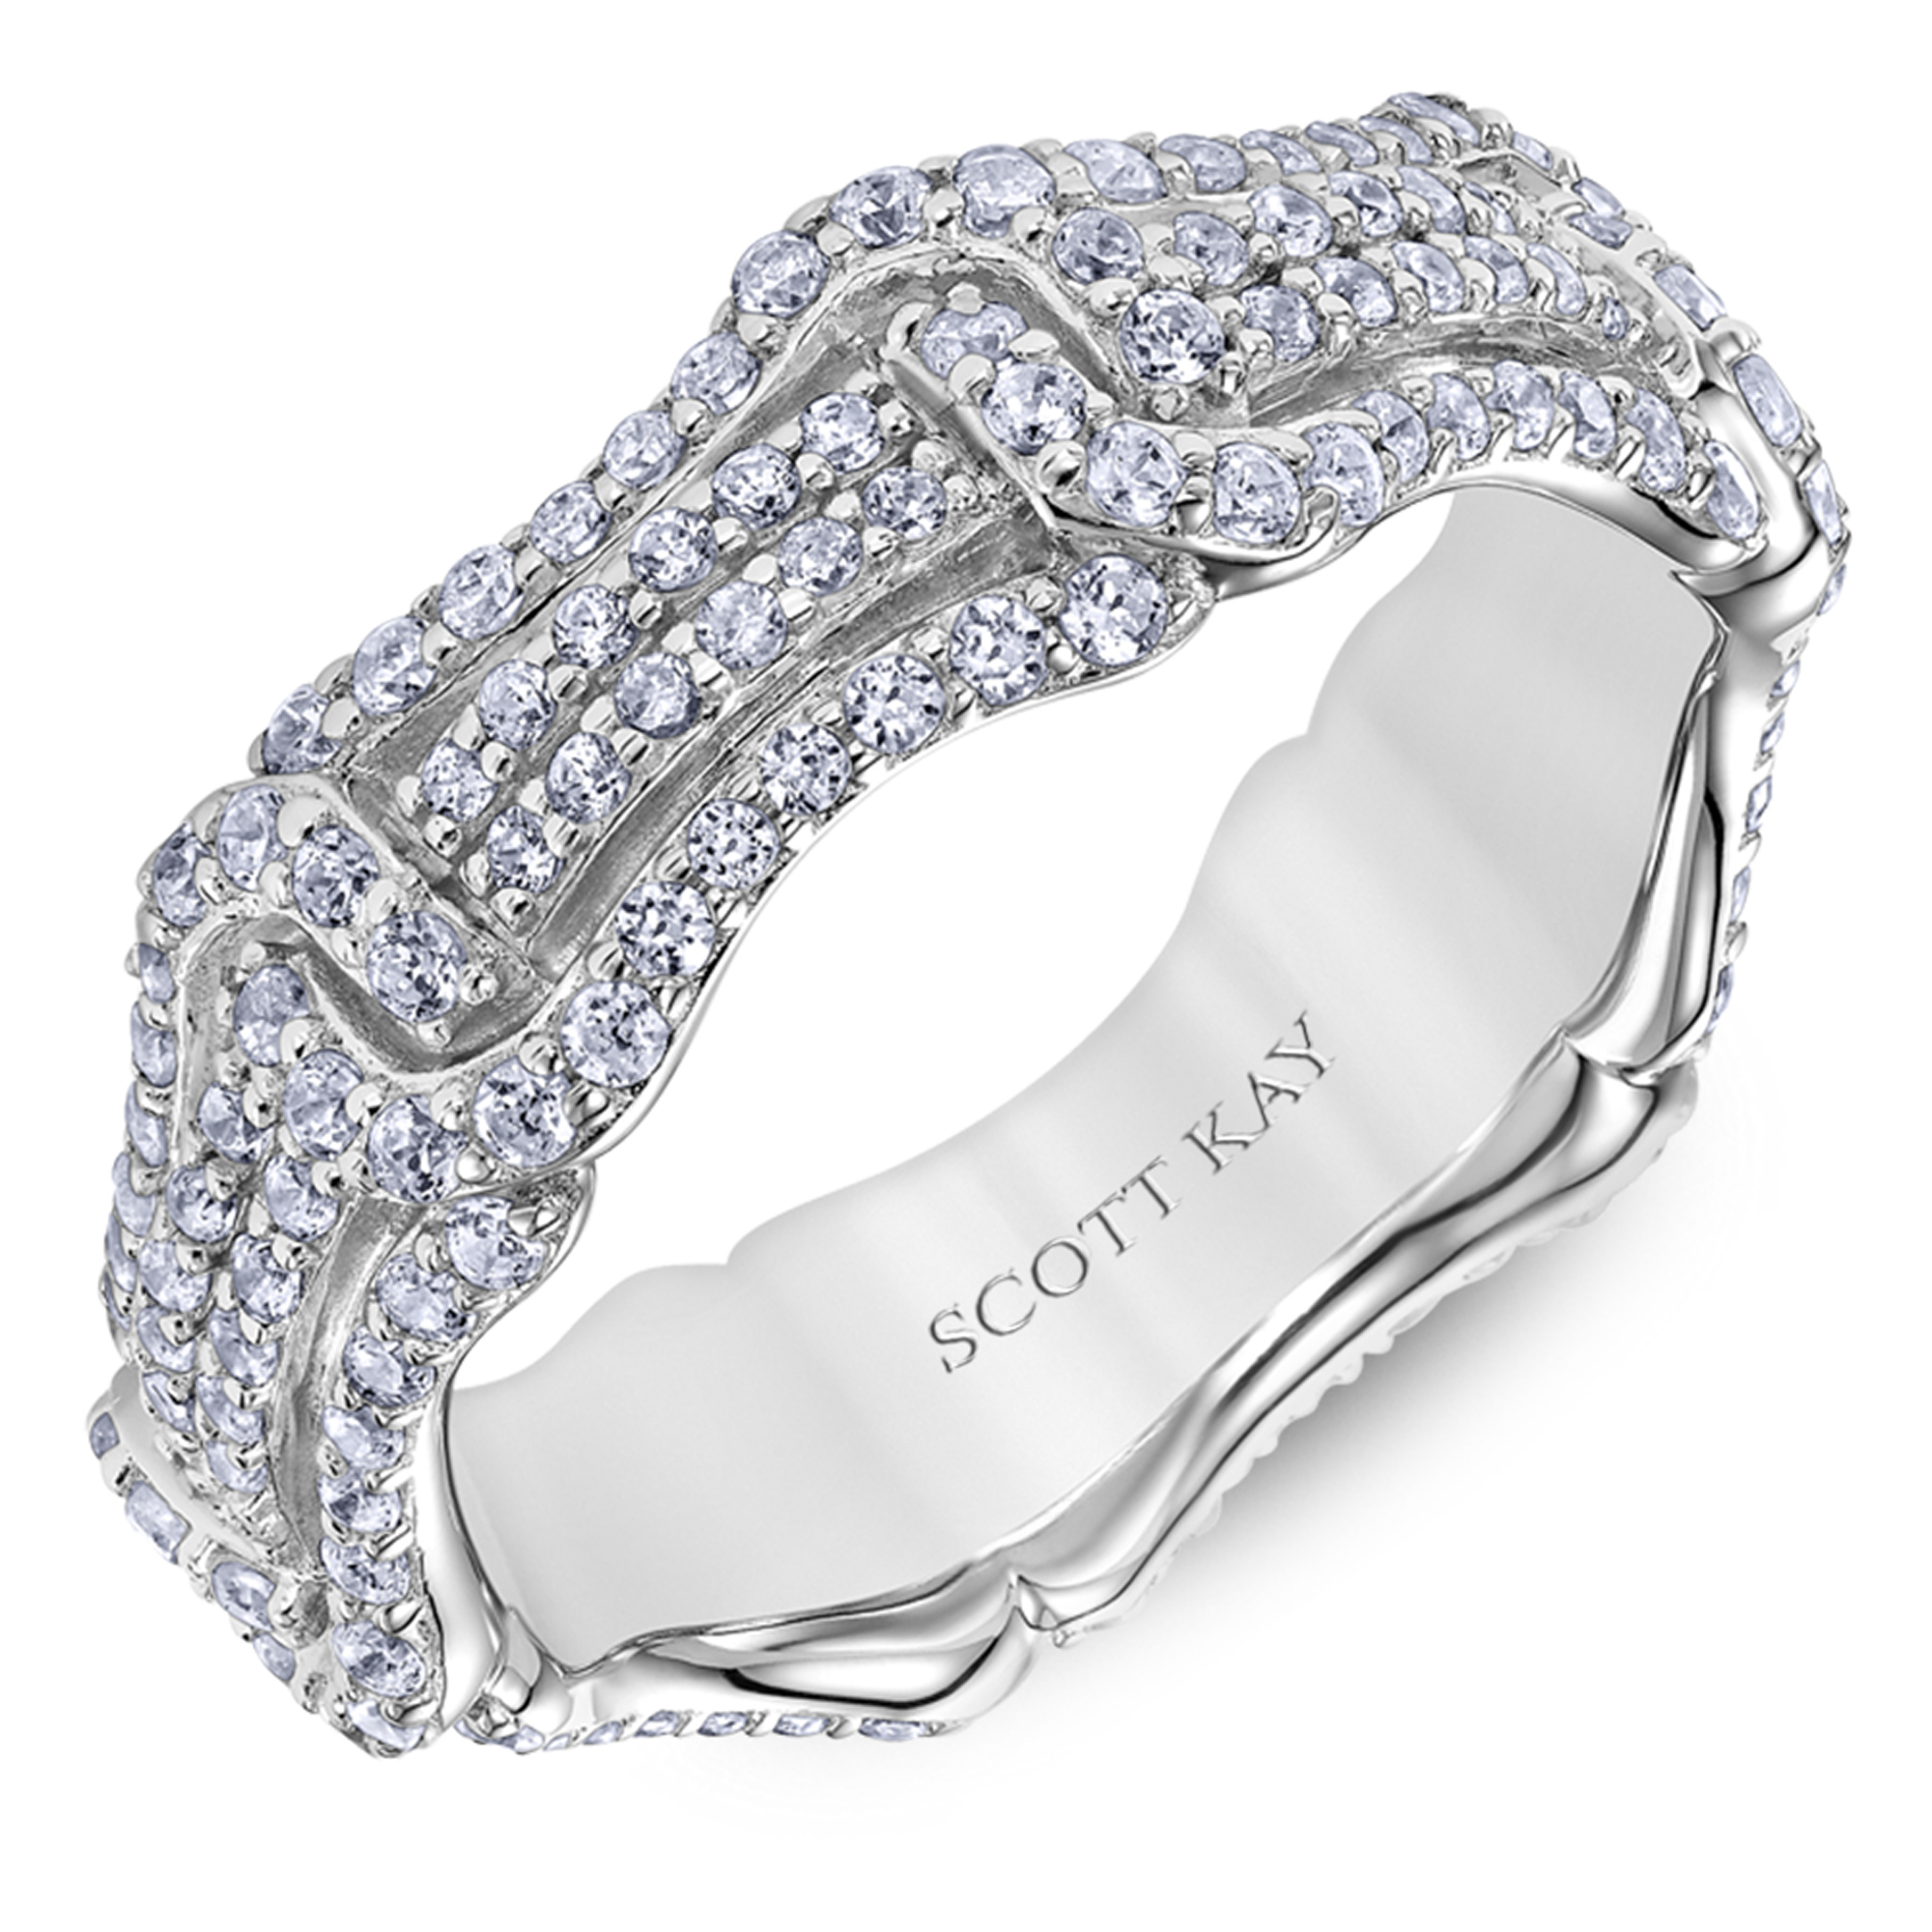 your engagement lovely jewelry of scott rings ring koerber s fine kay wedding destination beautiful vs platinum